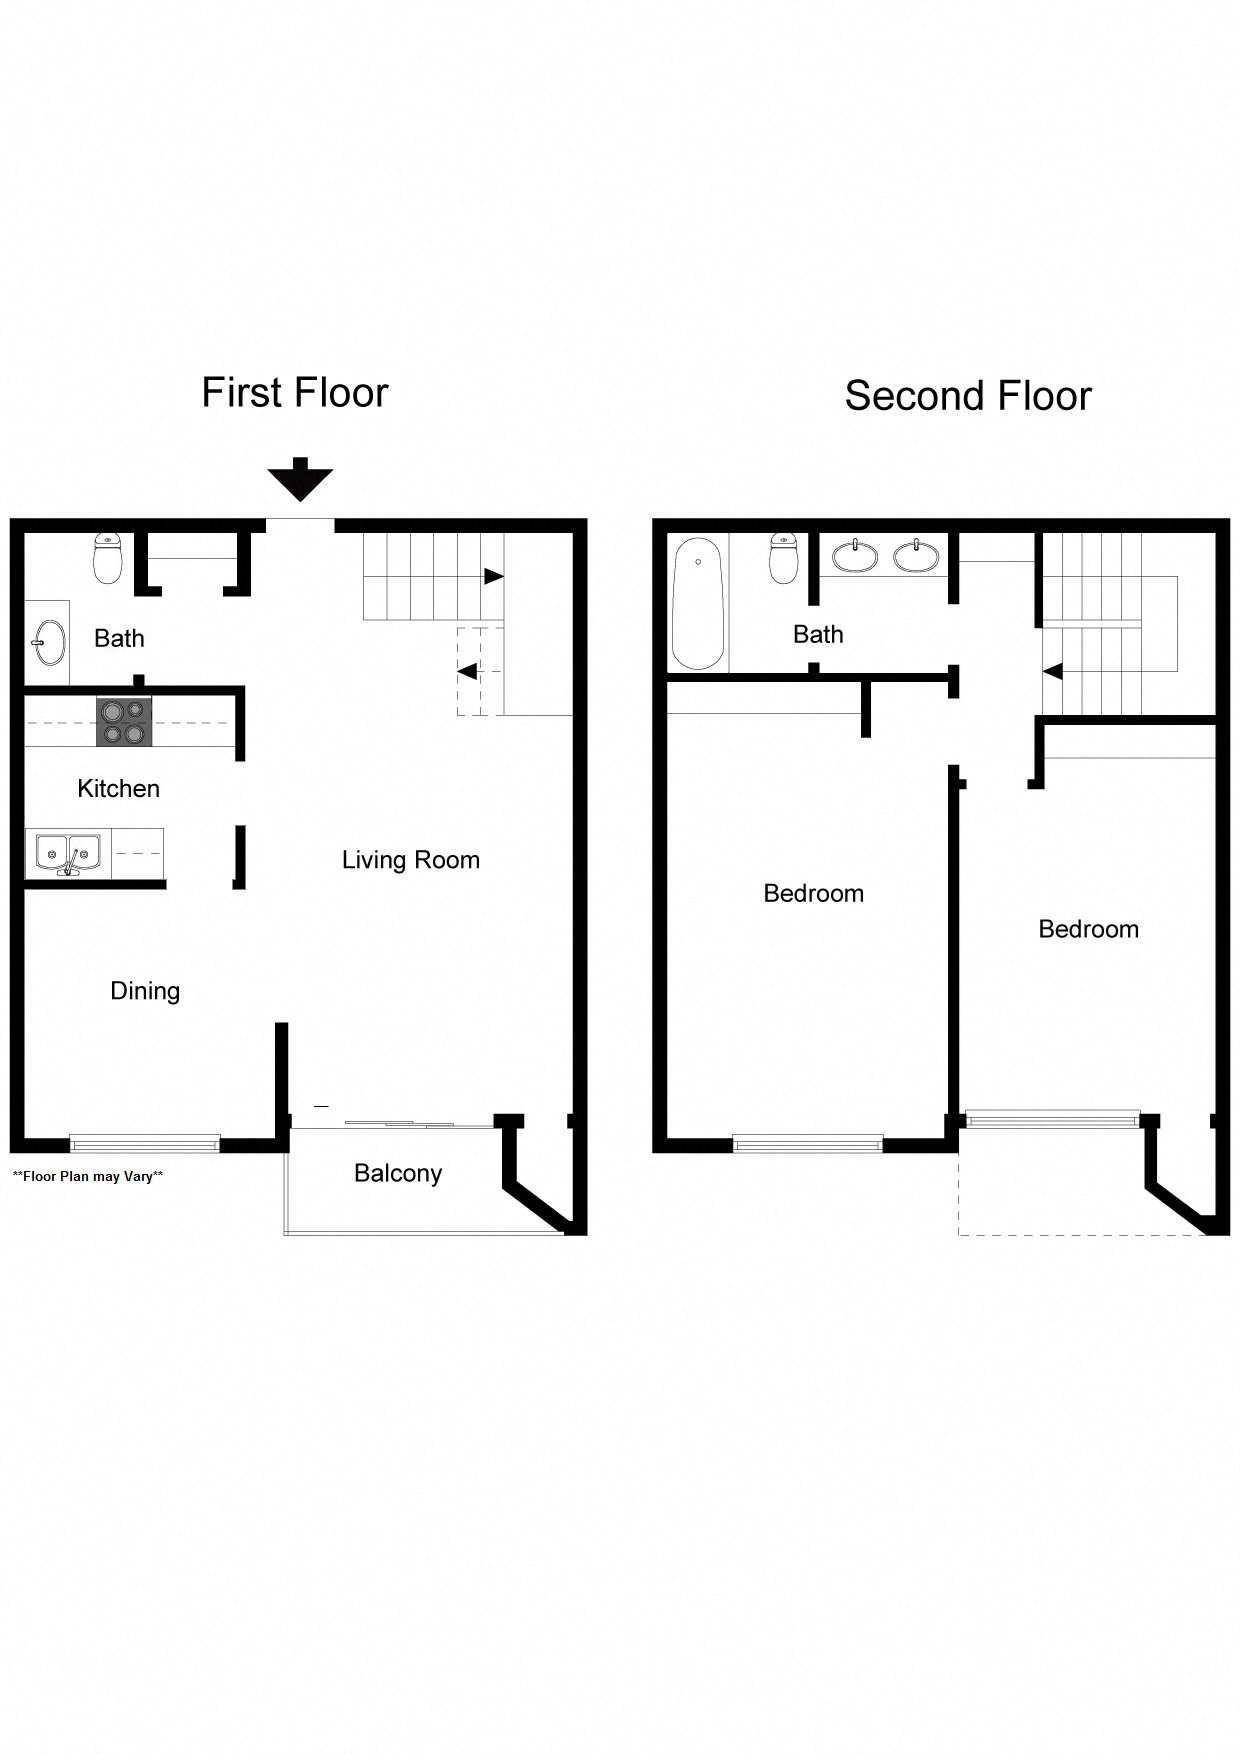 2 Bedroom, 1.5 Bath Two Story Apartment Floor Plan 6